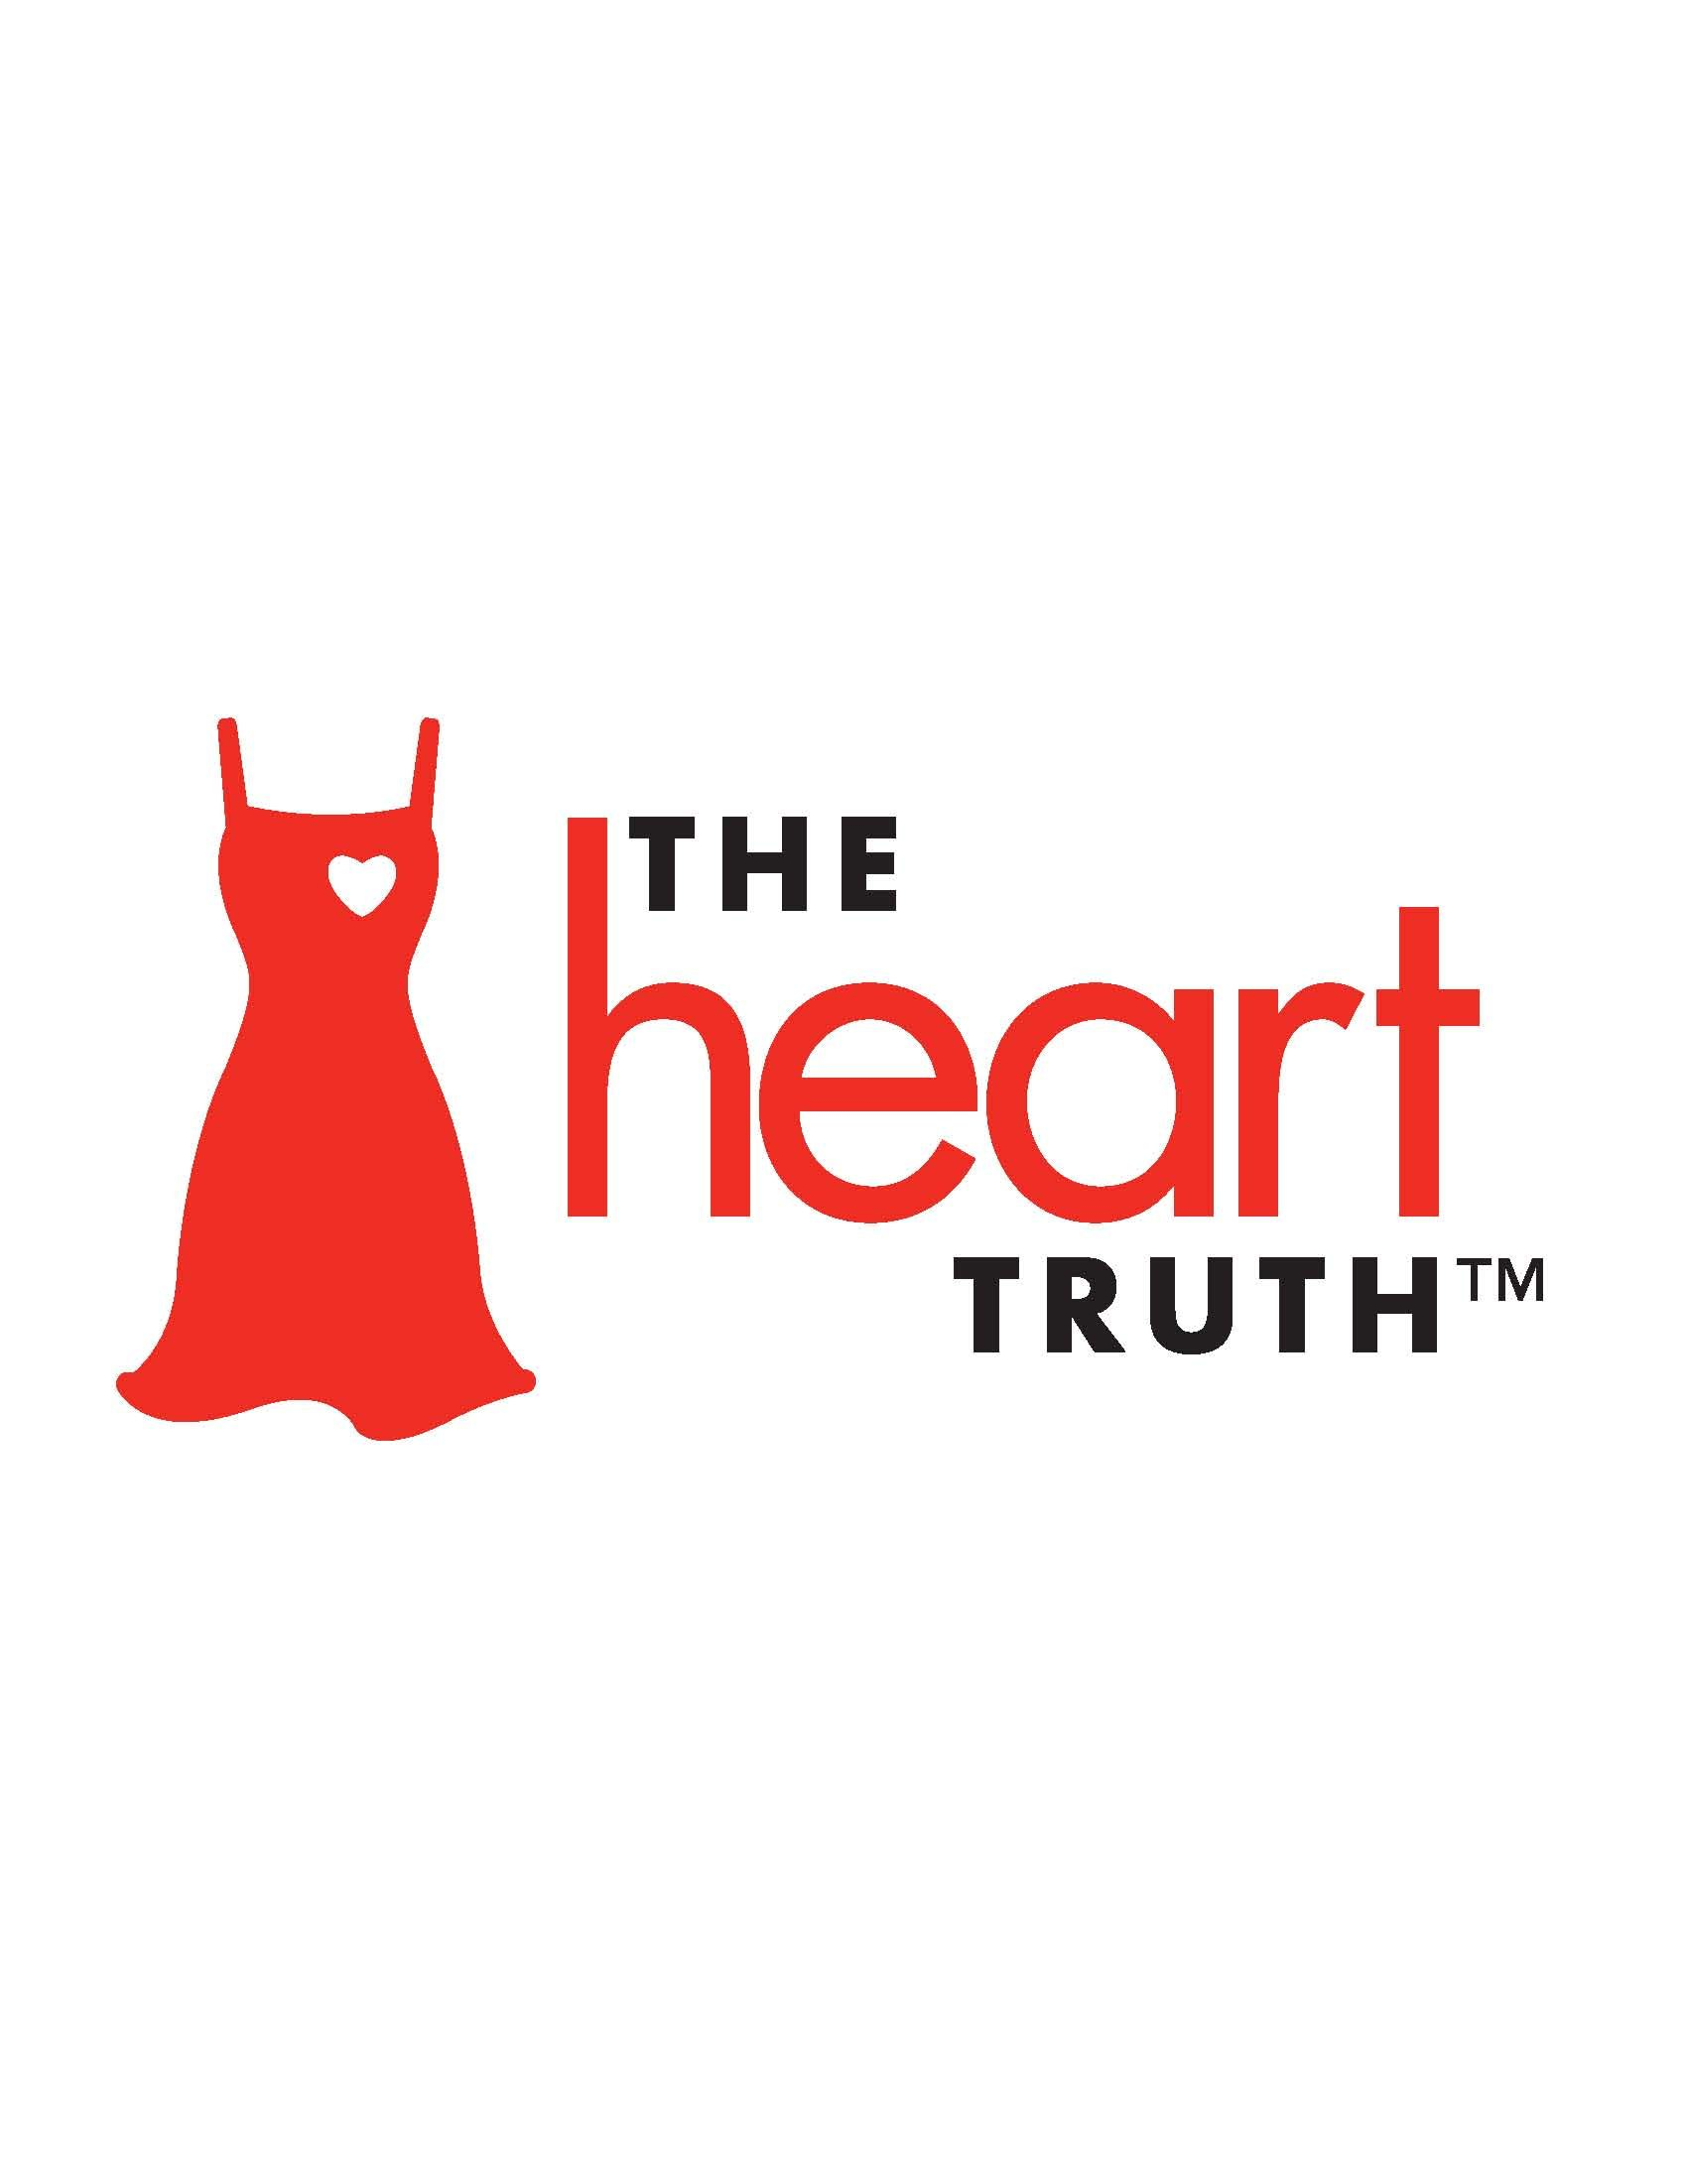 The 10th Anniversary Of The Heart Truth Mama Latina Tips Heart Disease Awareness American Heart Month Heart Month